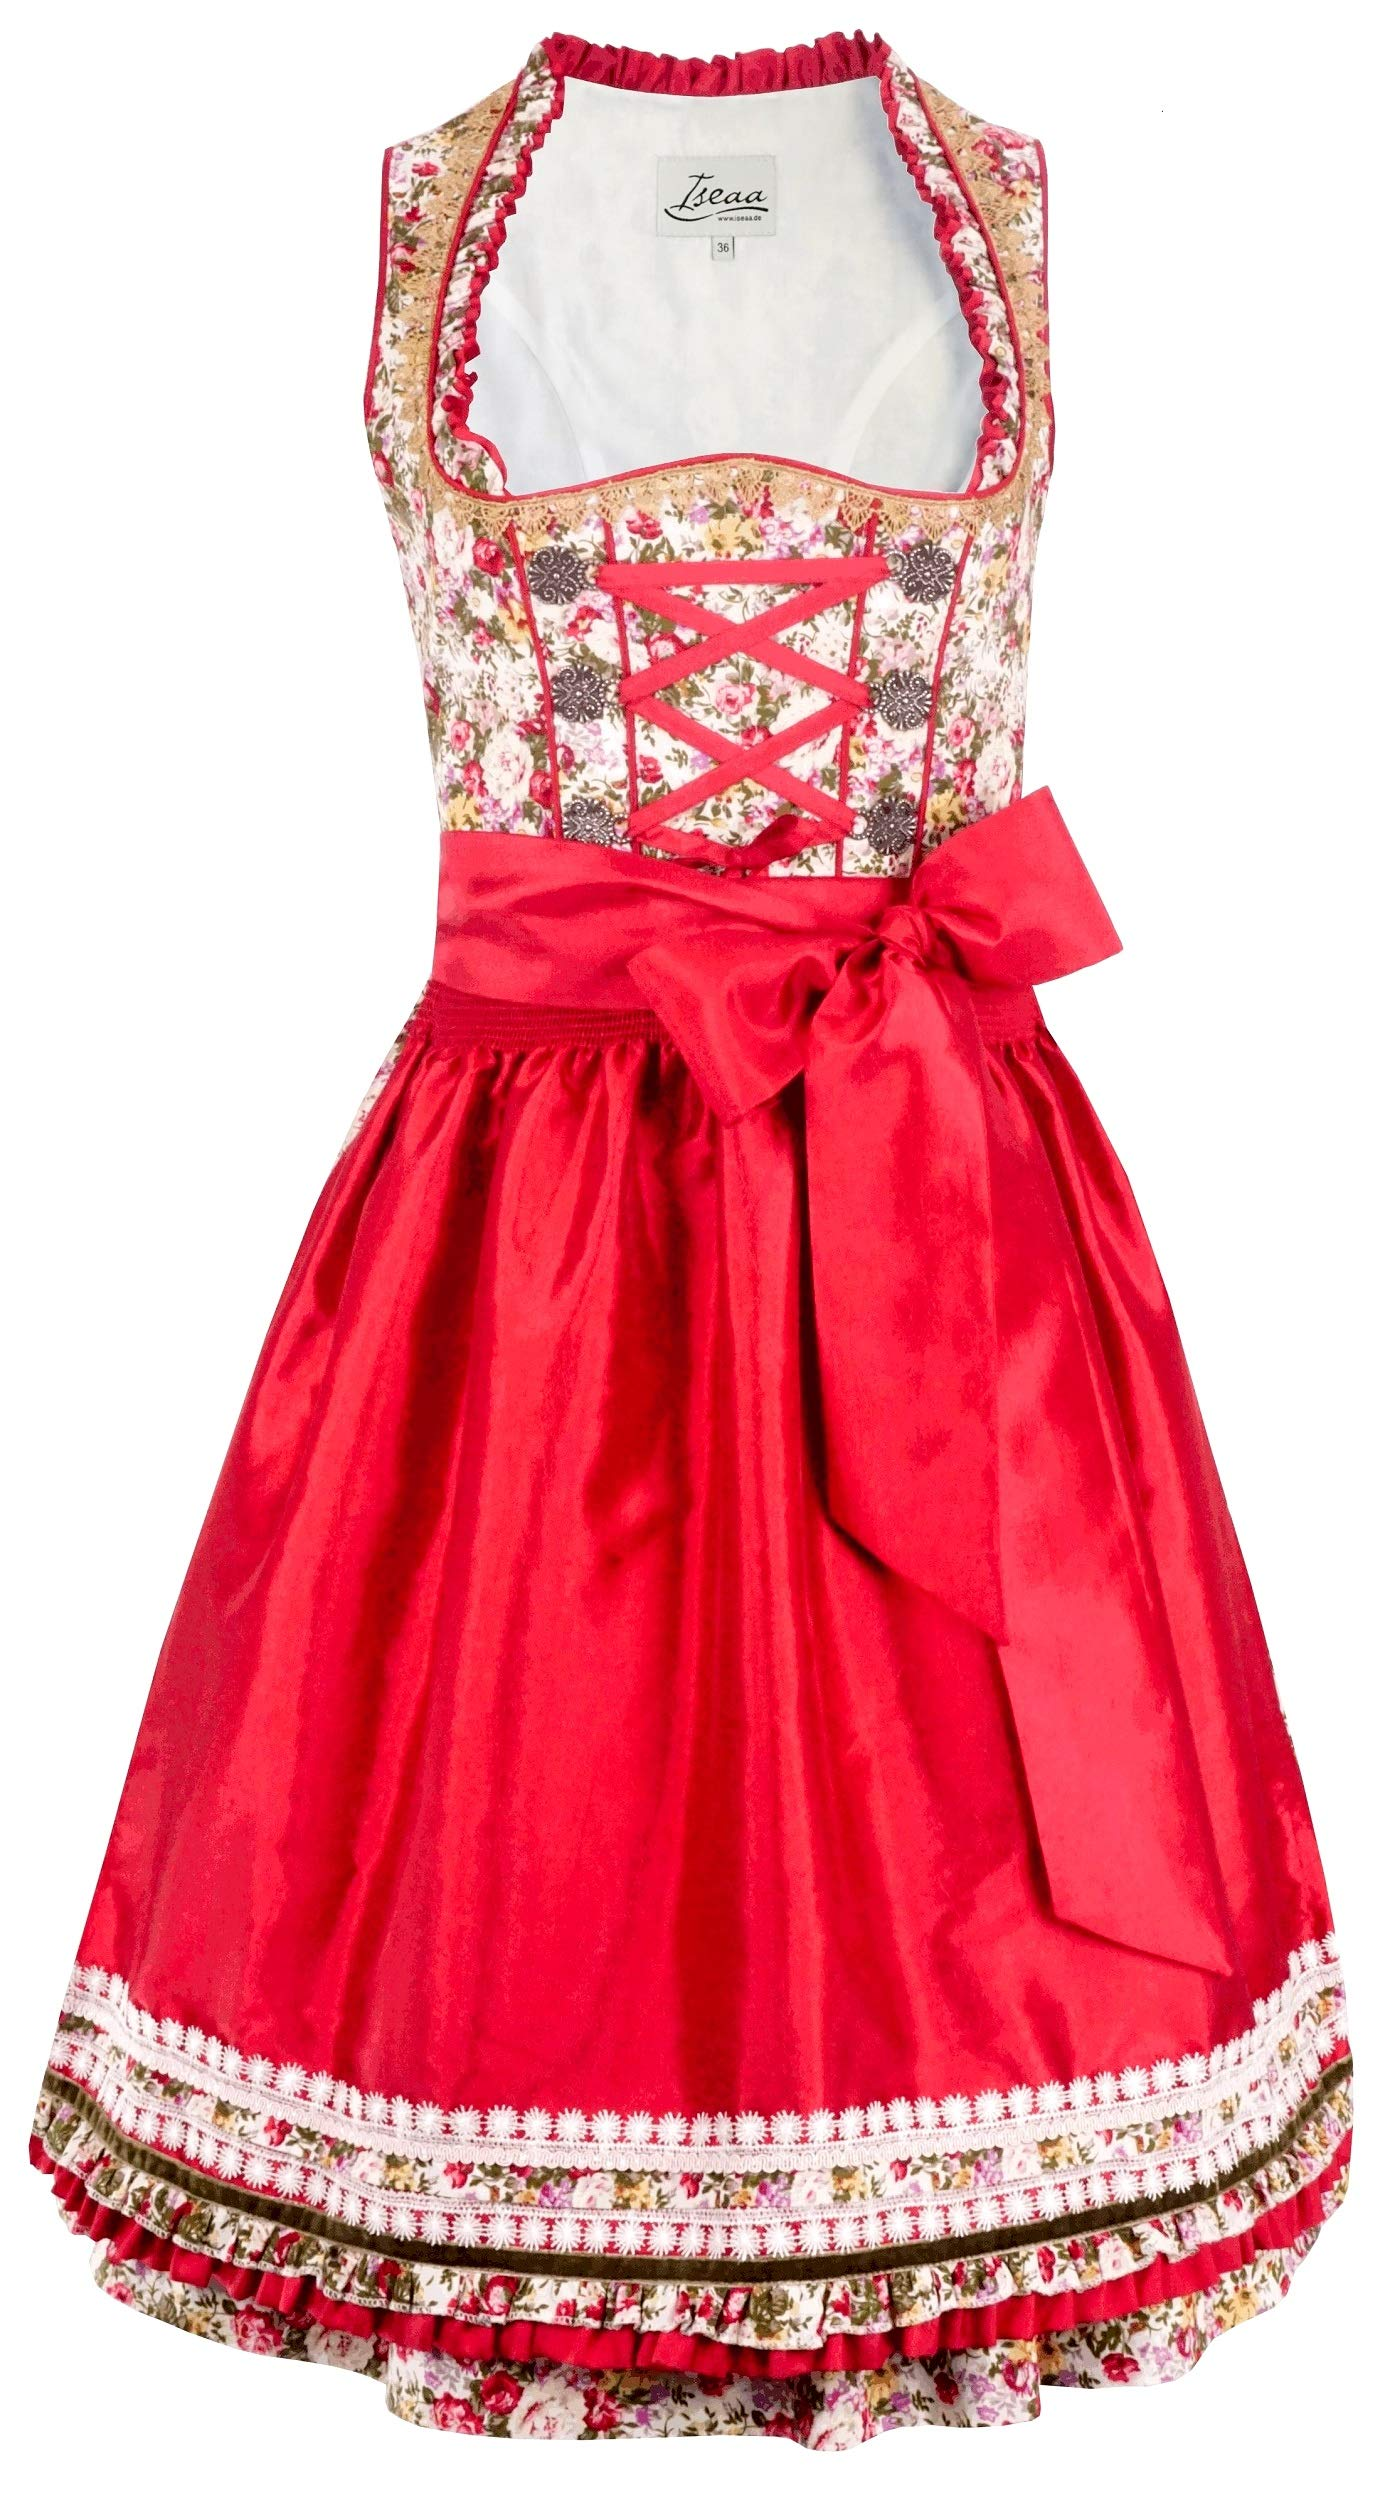 Exclusive Dirndl 2 pcs. Tiara Traditional Dress with Apron 42 Red